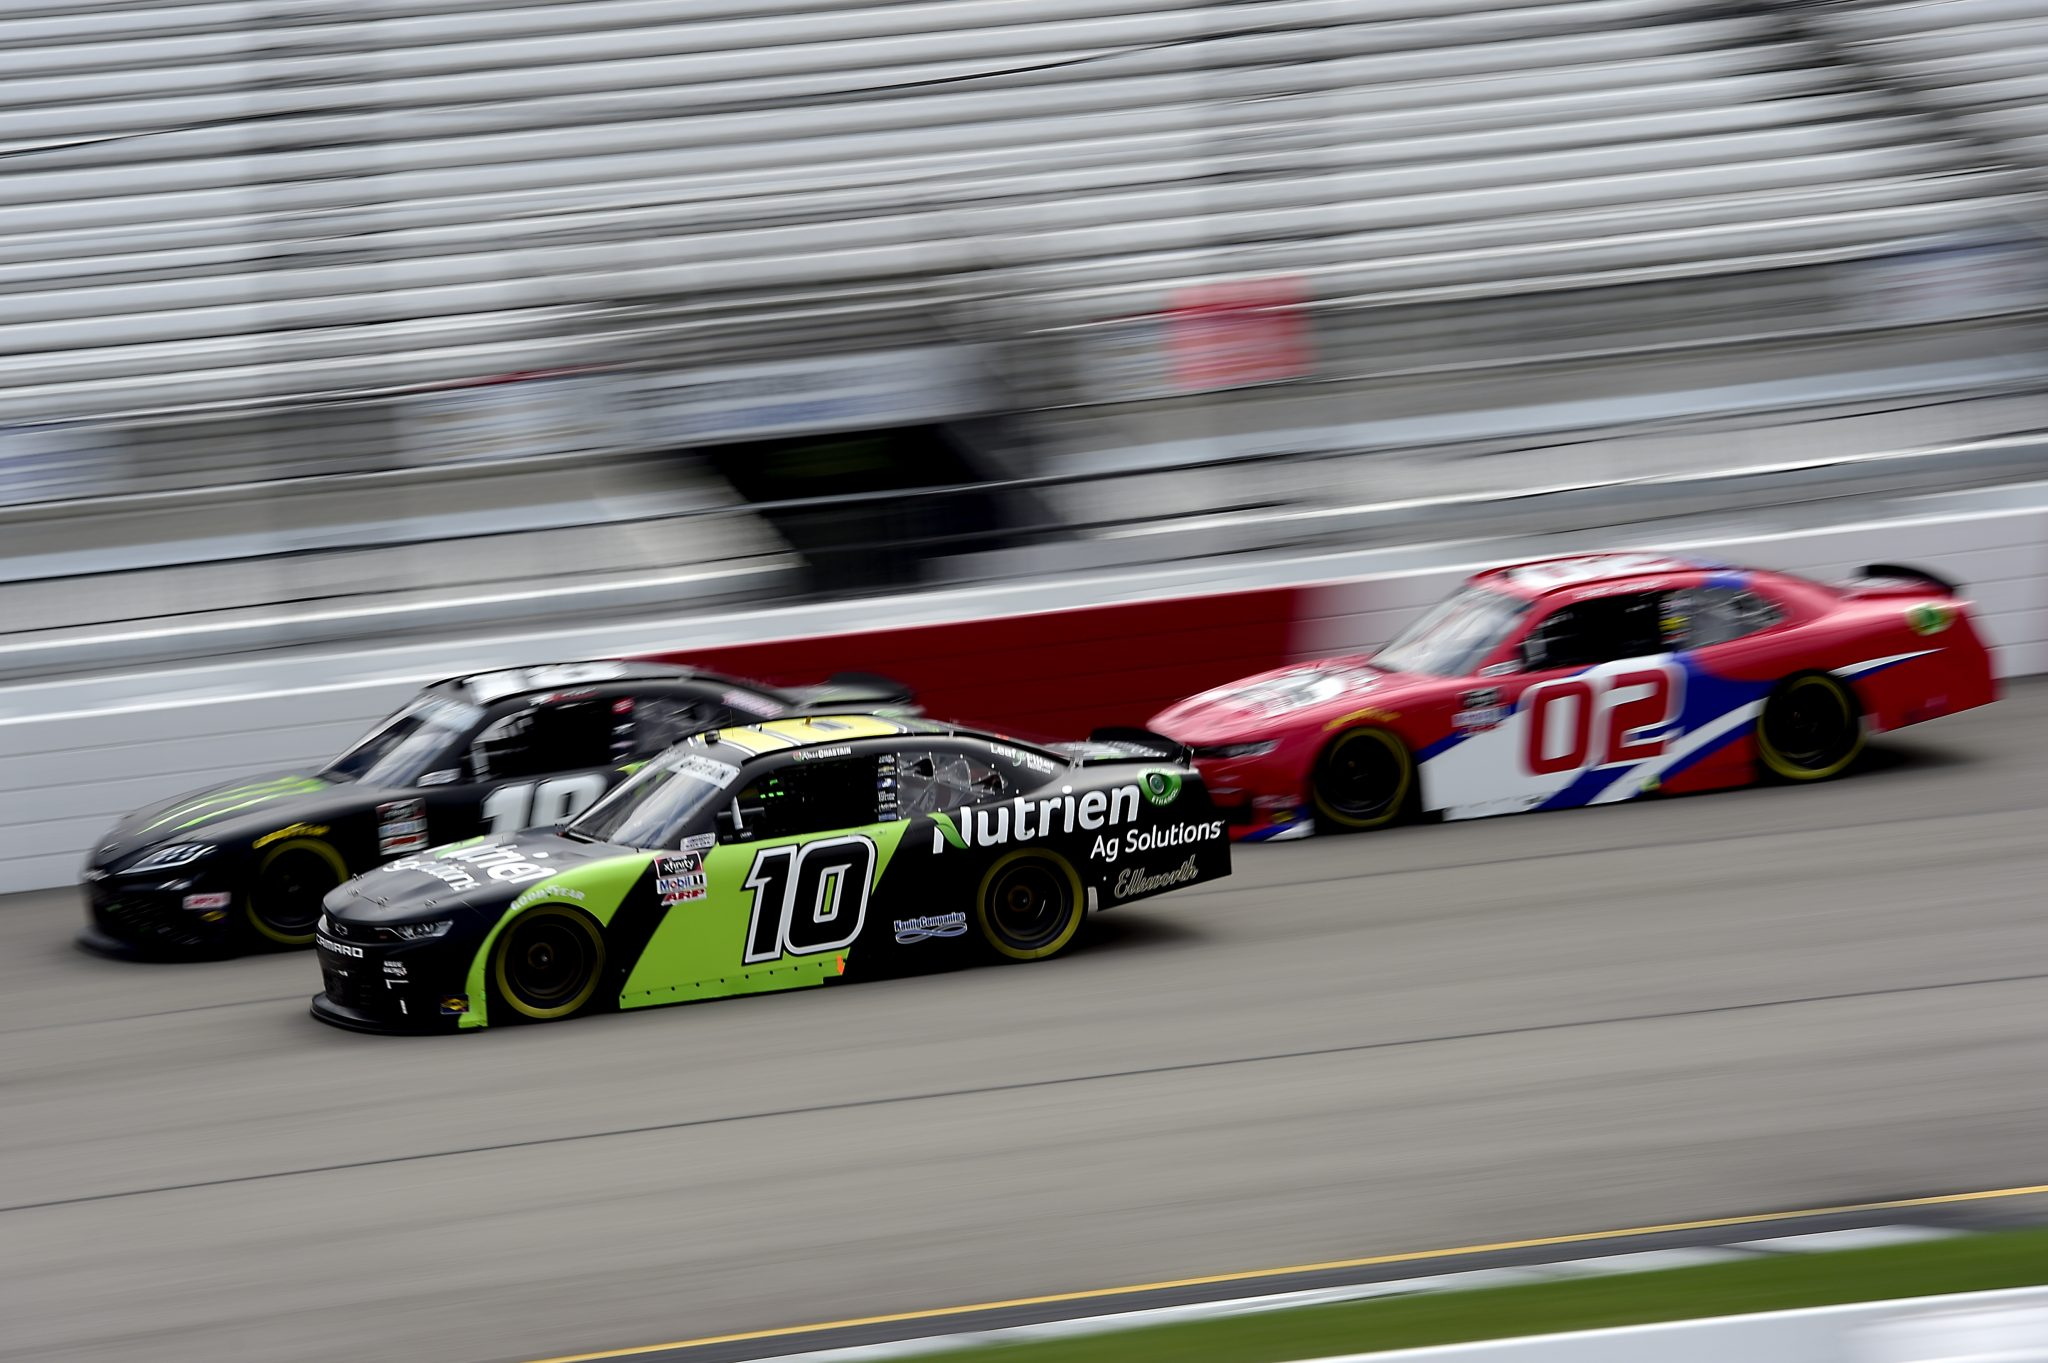 RICHMOND, VIRGINIA - SEPTEMBER 12: Ross Chastain, driver of the #10 Nutrien Ag Solutions Chevrolet, Riley Herbst, driver of the #18 Monster Energy Toyota, and Brett Moffitt, driver of the #02 Robert B Our Inc Co Chevrolet, race during the NASCAR Xfinity Series Virginia is for Racing Lovers 250 at Richmond Raceway on September 12, 2020 in Richmond, Virginia. (Photo by Jared C. Tilton/Getty Images) | Getty Images